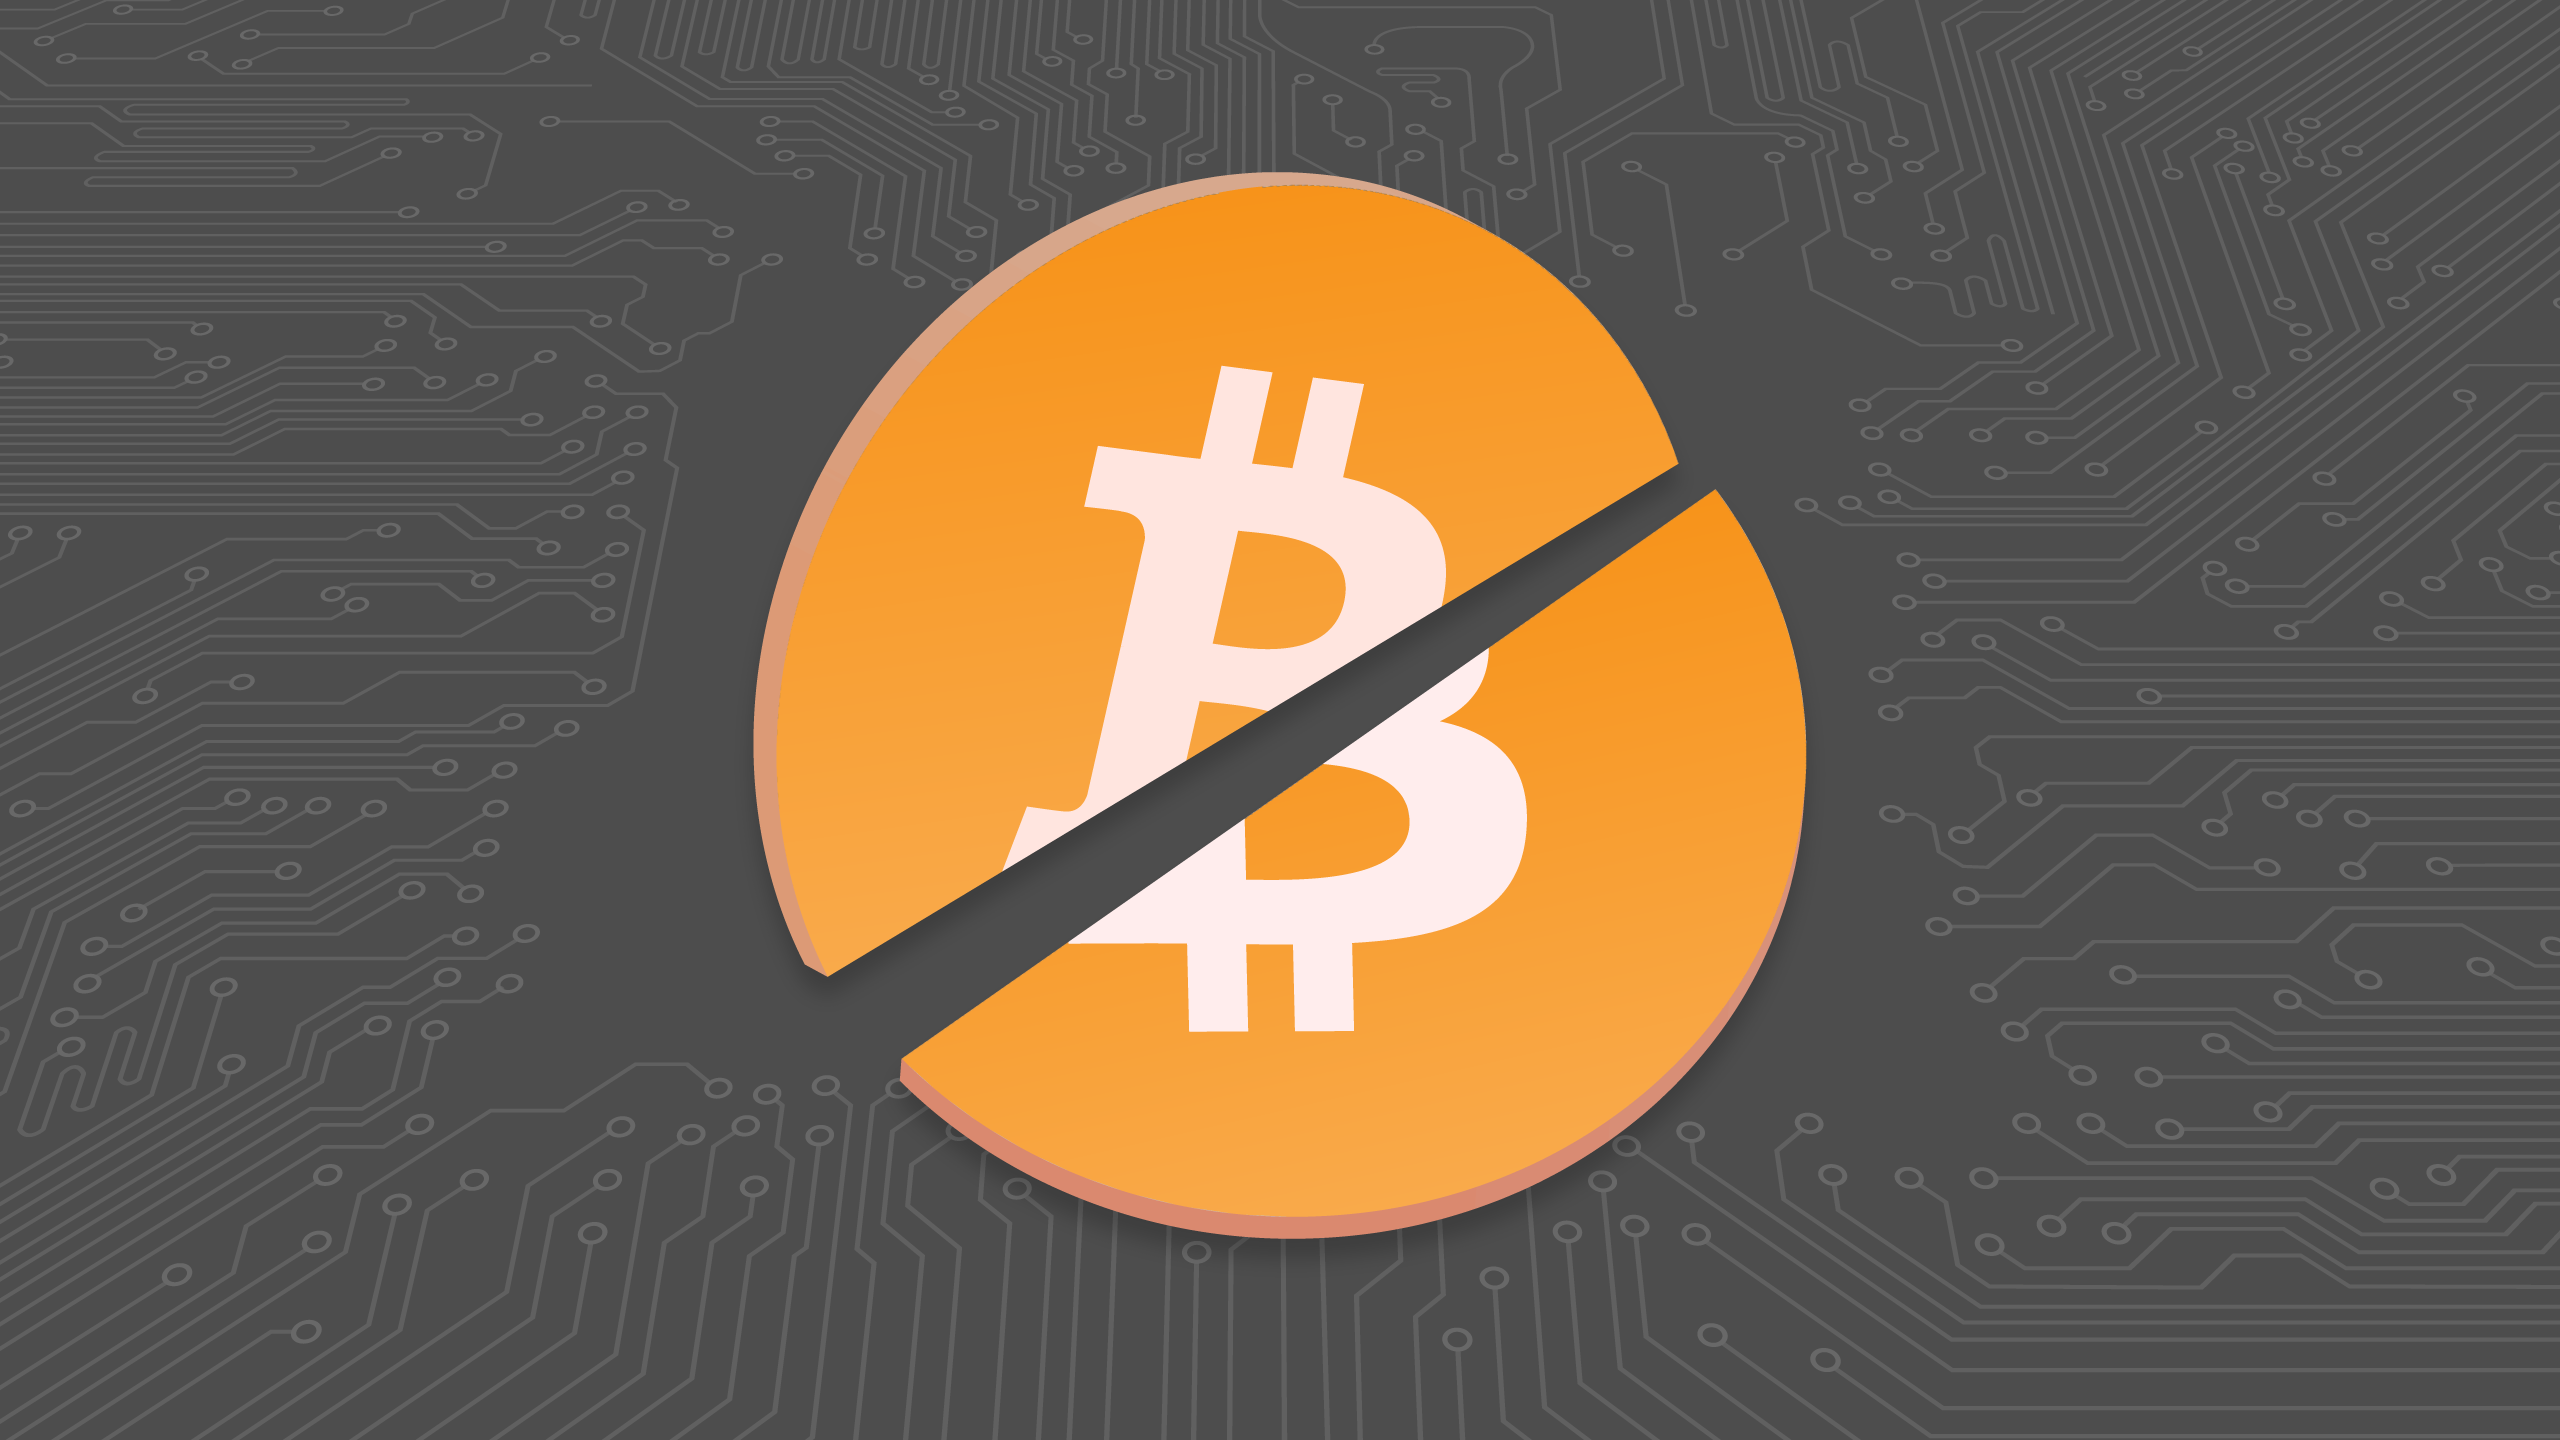 Top Korean crypto exchange Bithumb hacked, $31.5 million lost